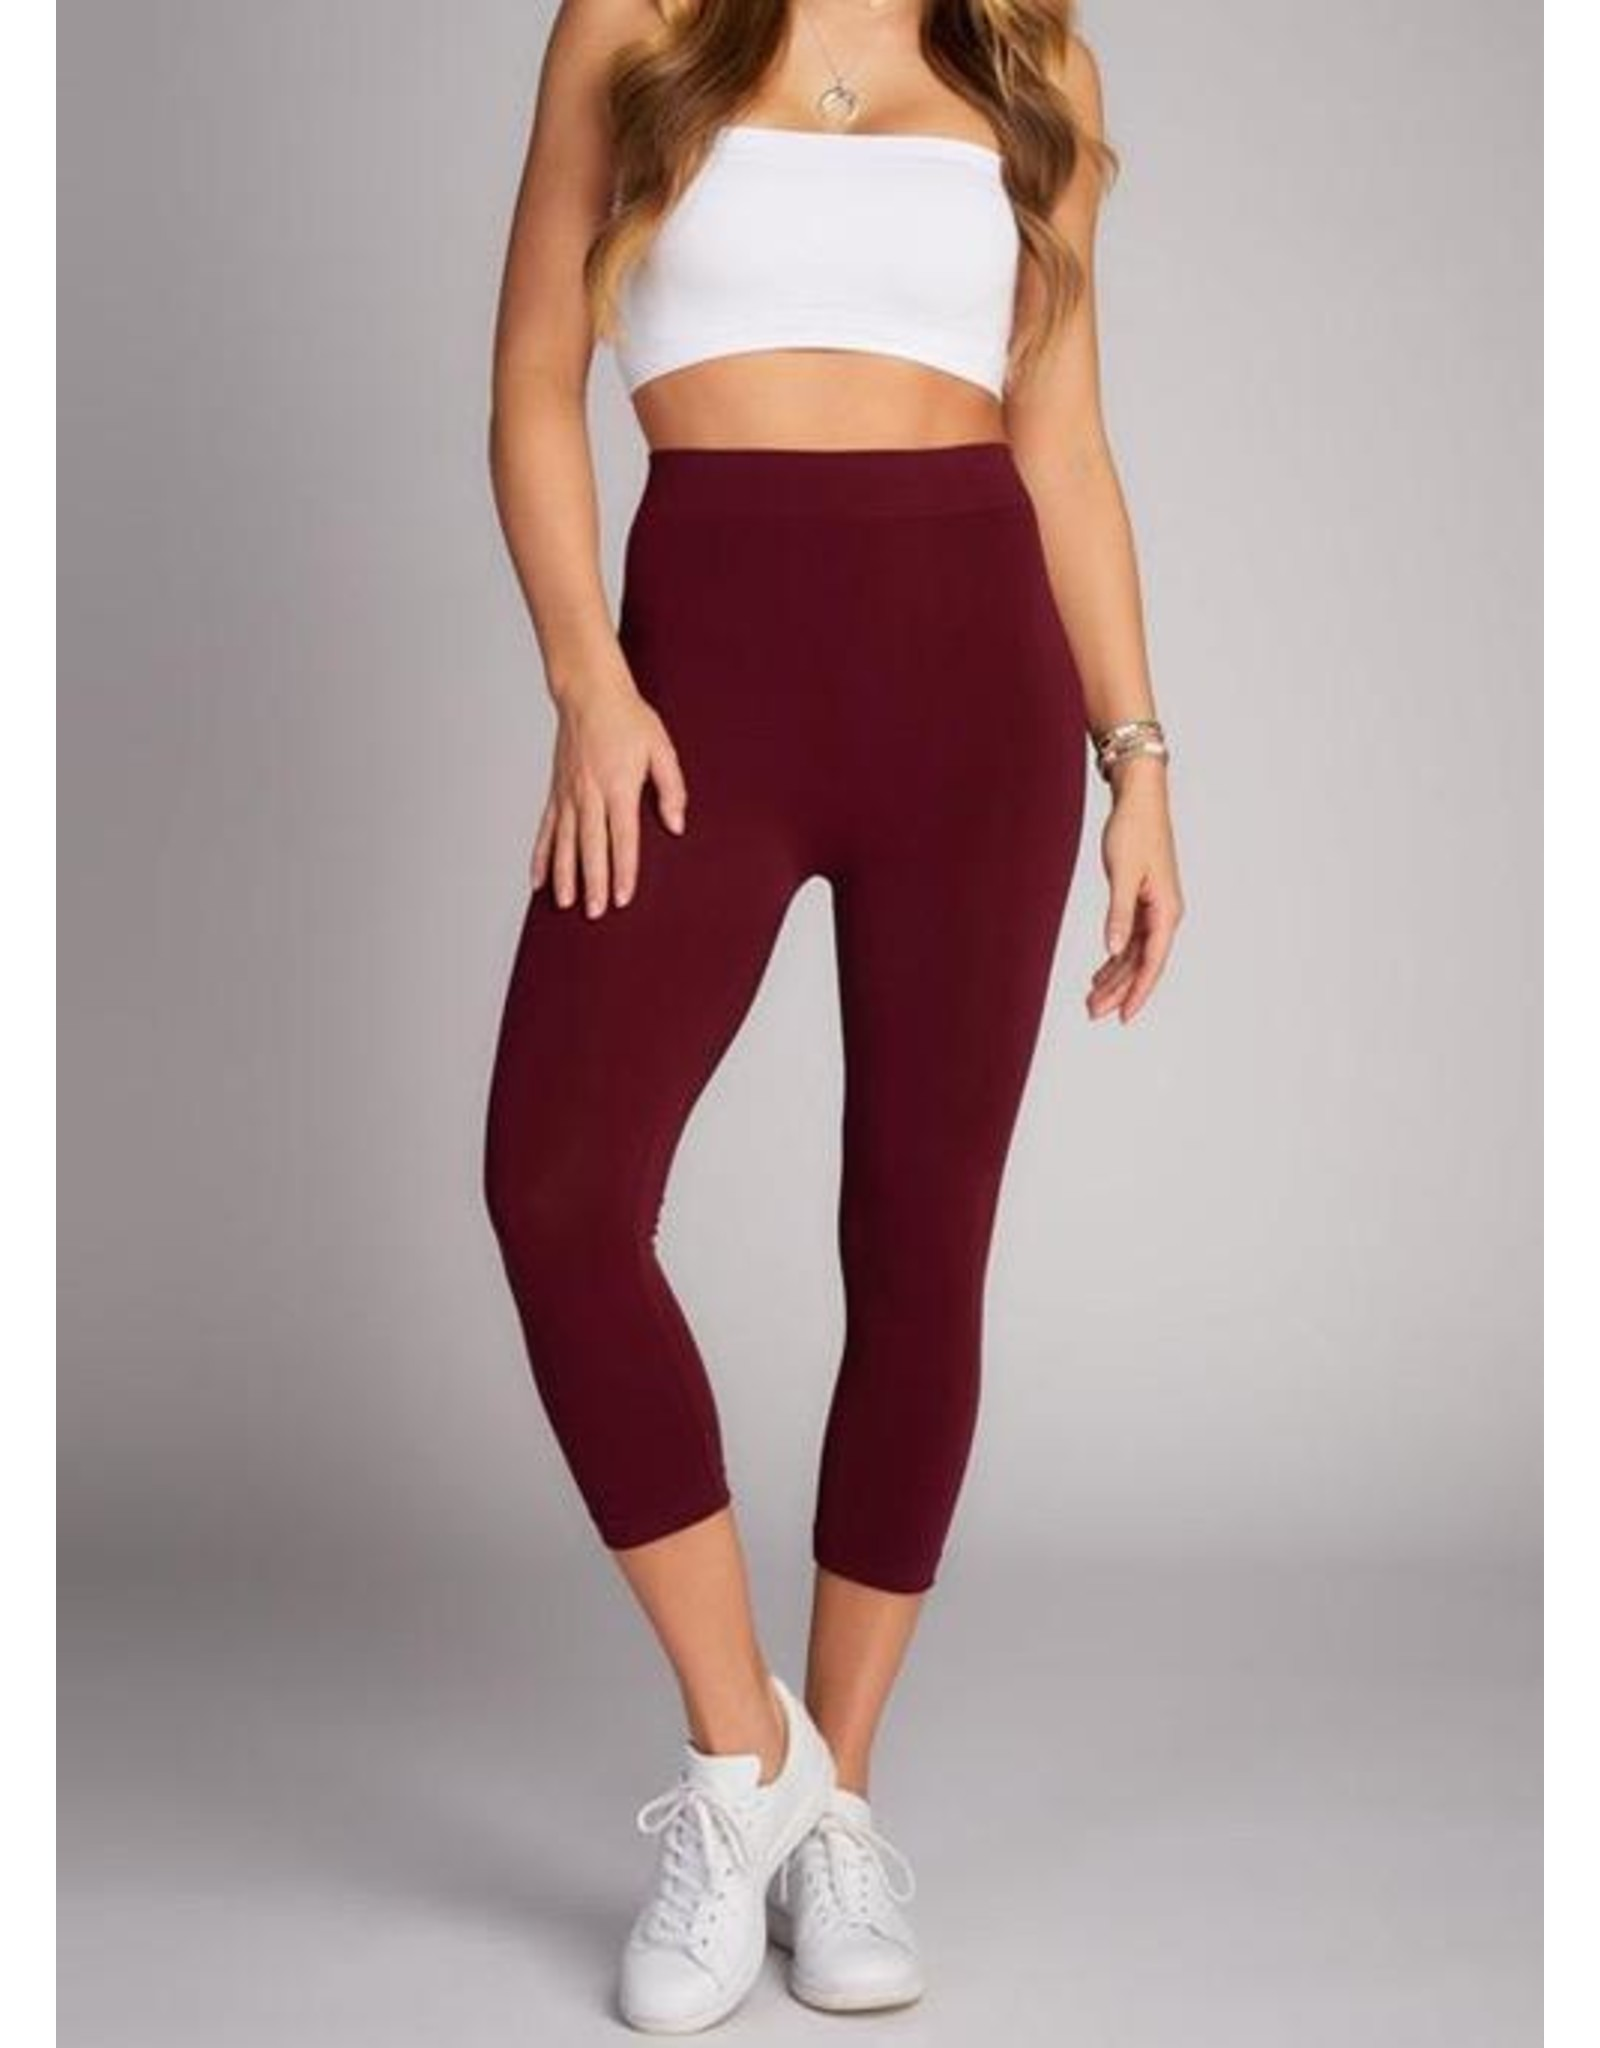 C'est Moi/ Coast to Coast Trading 3/4 Bamboo Leggings